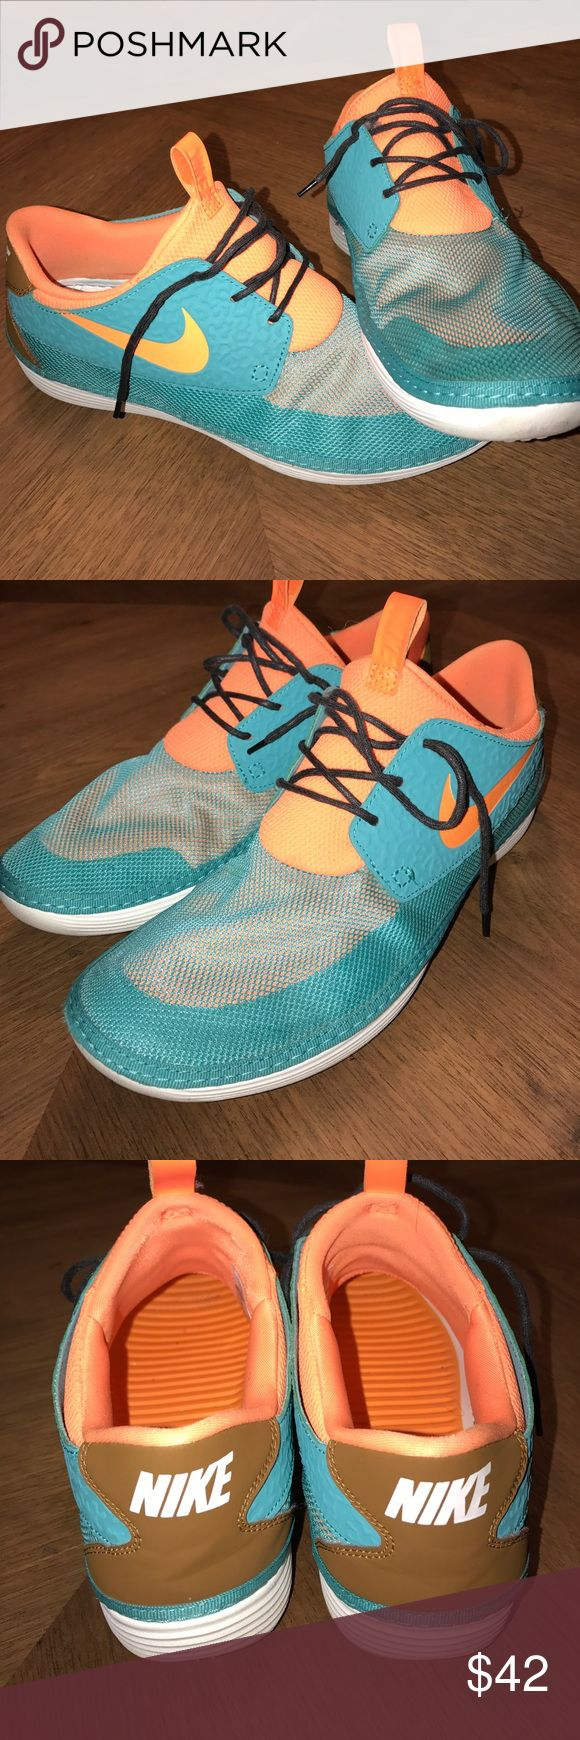 Nike Solarsoft Moccasins sz 11 Miami Ducks Ugh! I just ordered these and they are a little too small. Should have went with 11.5.  They have very minor wear. Nike Shoes Sneakers